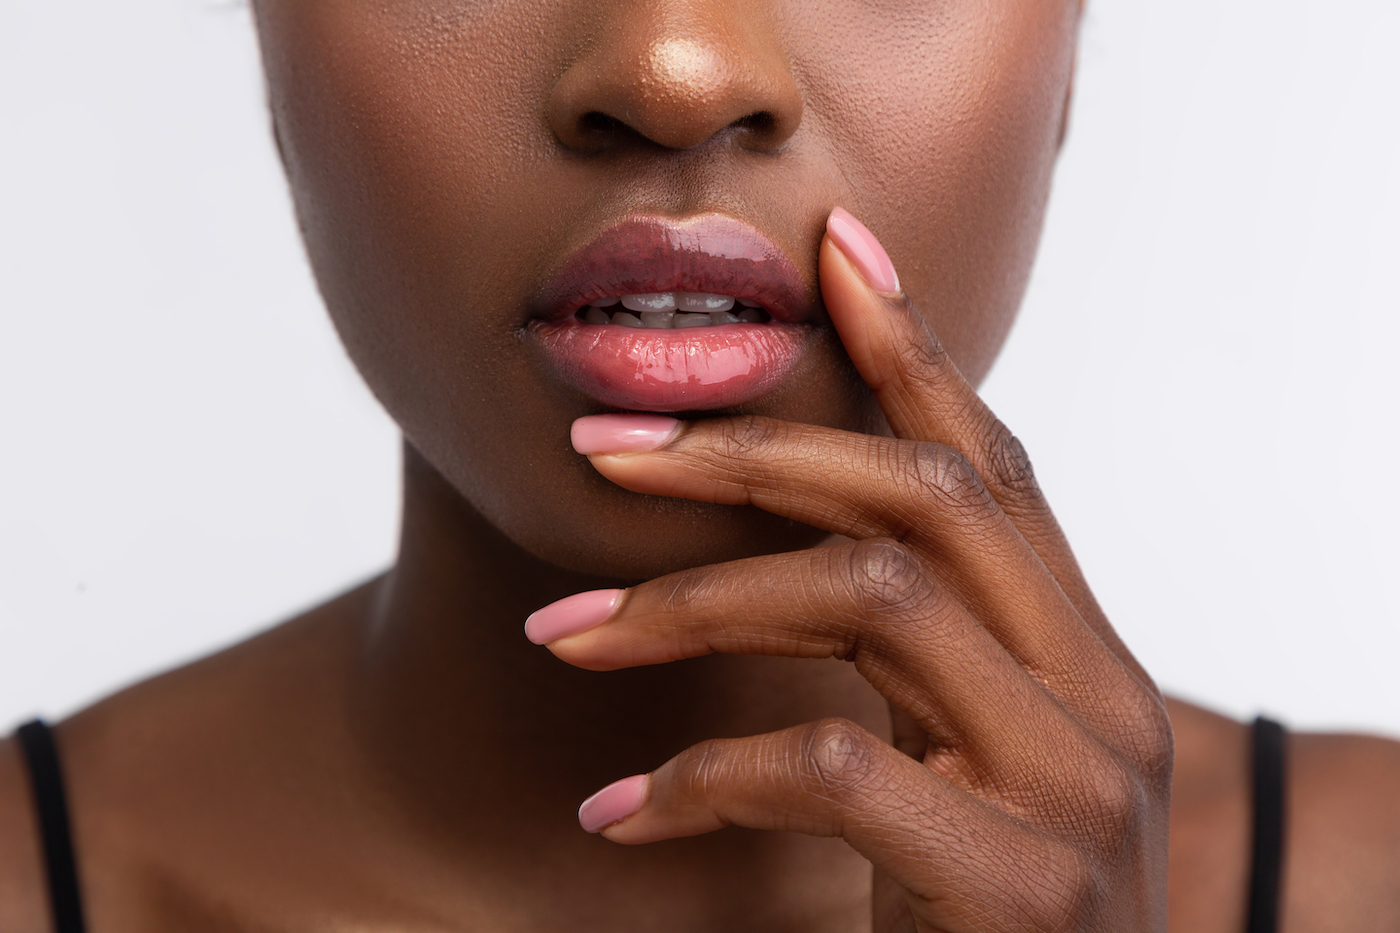 How To Stop Biting Nails According To A Behavioral